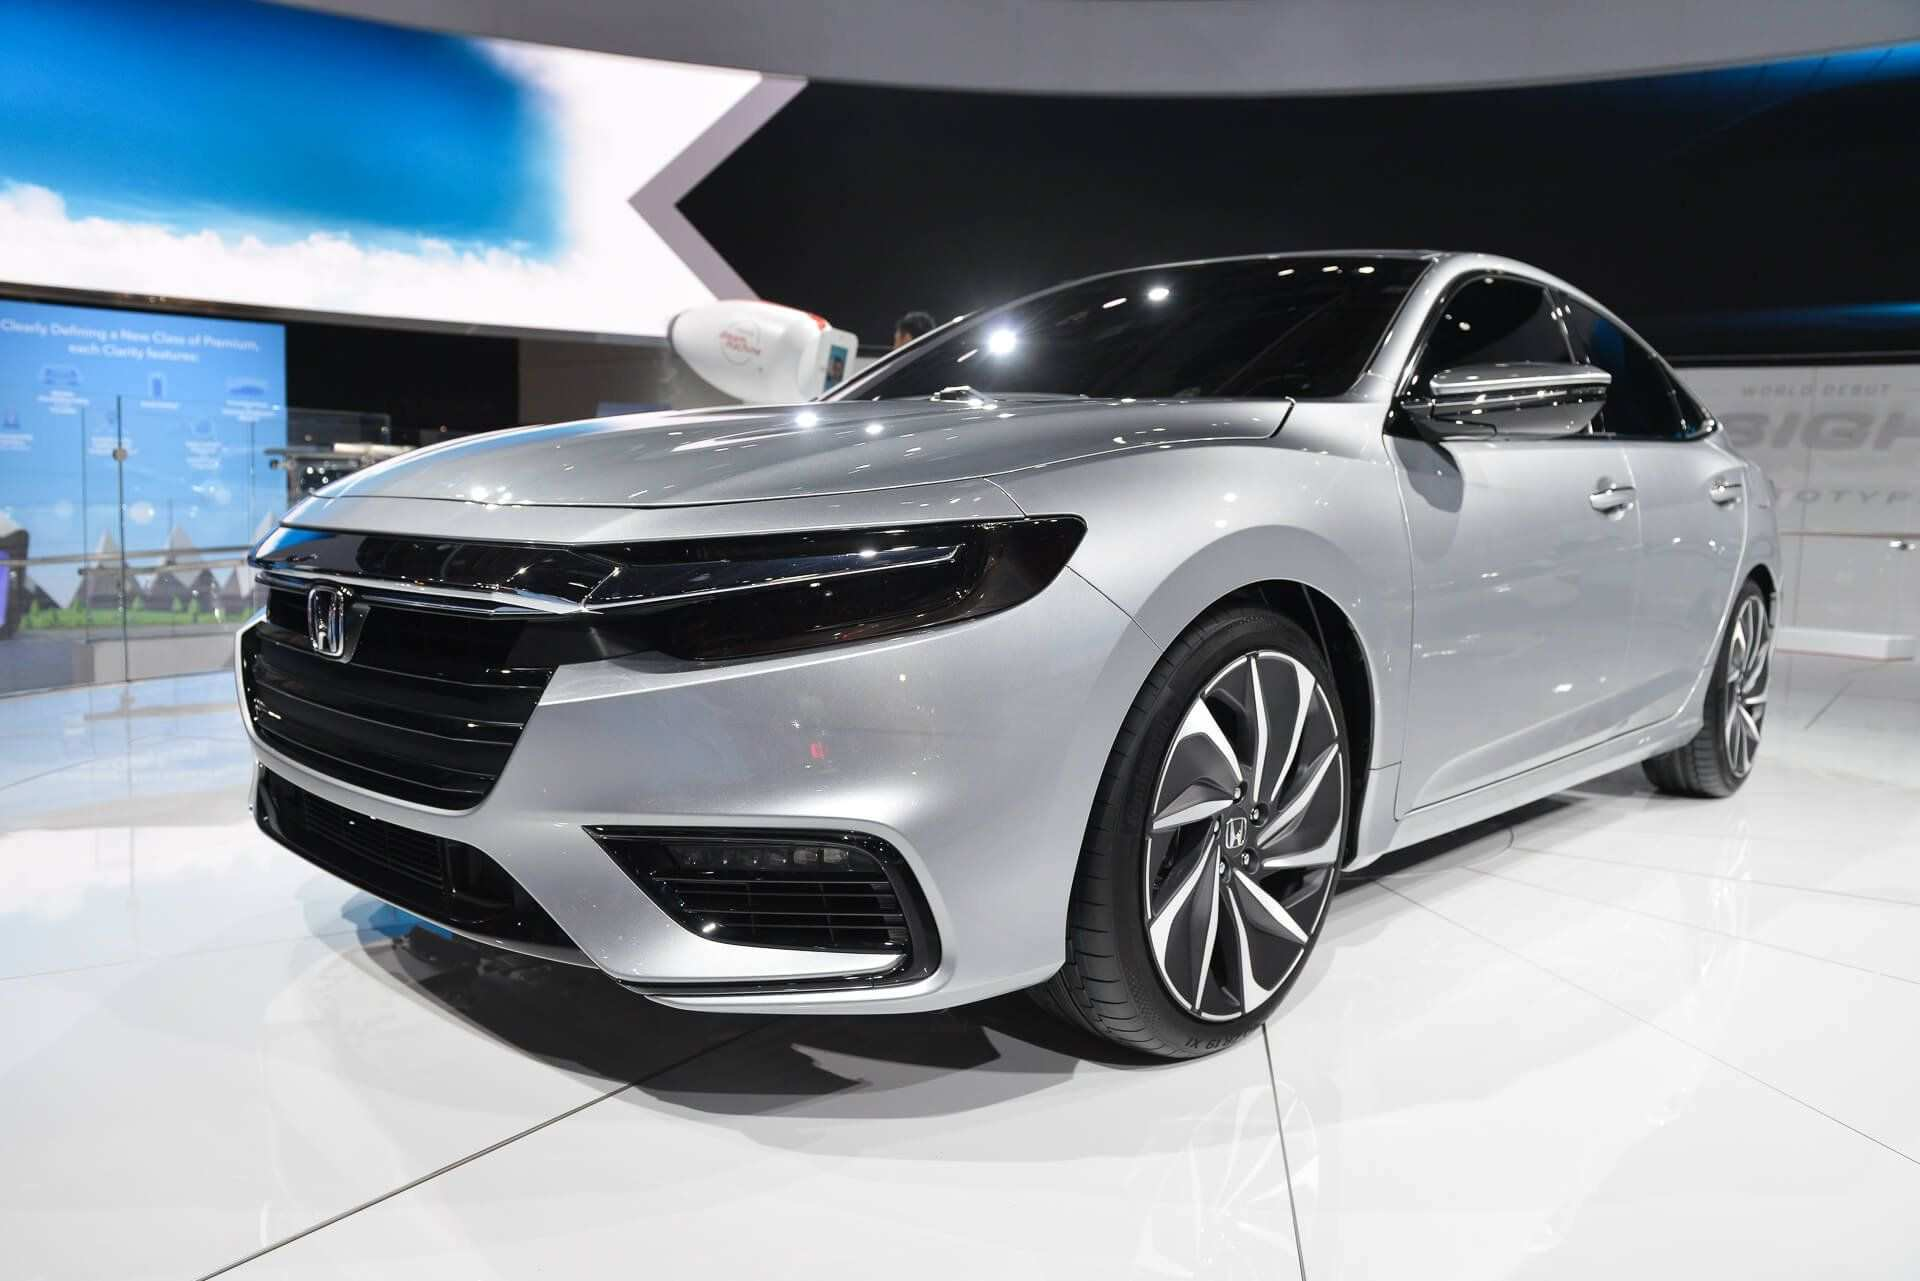 40 Great 2020 Honda Civic Configurations for 2020 Honda Civic